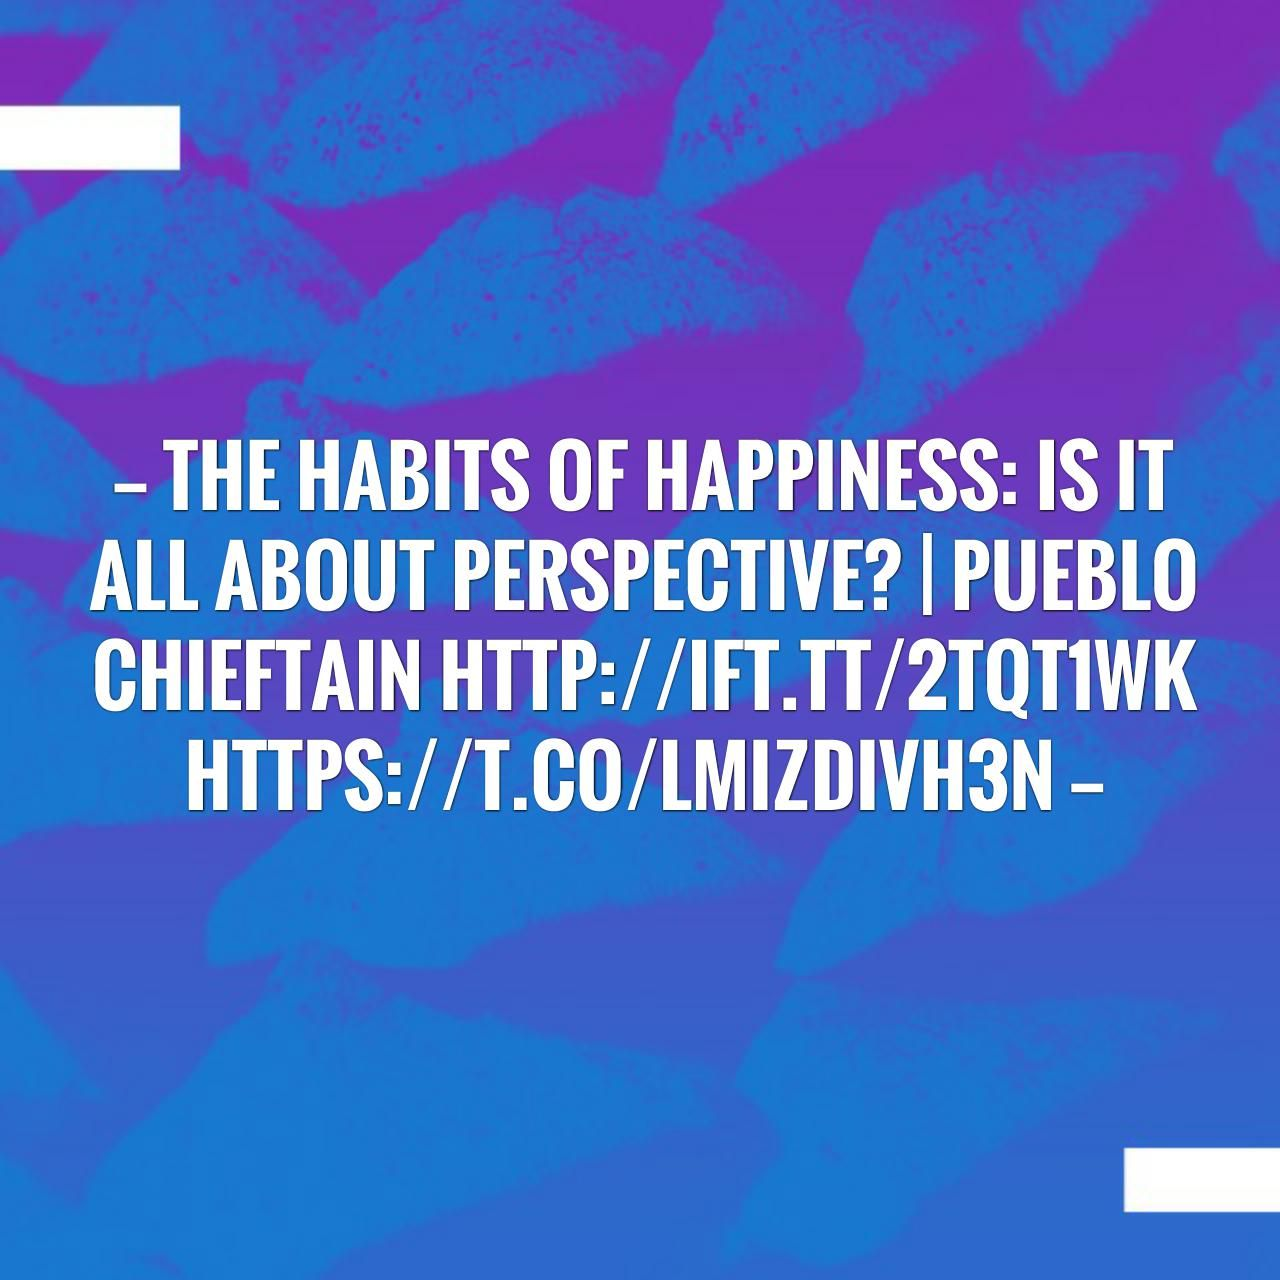 The habits of happiness Is it all about perspective? It